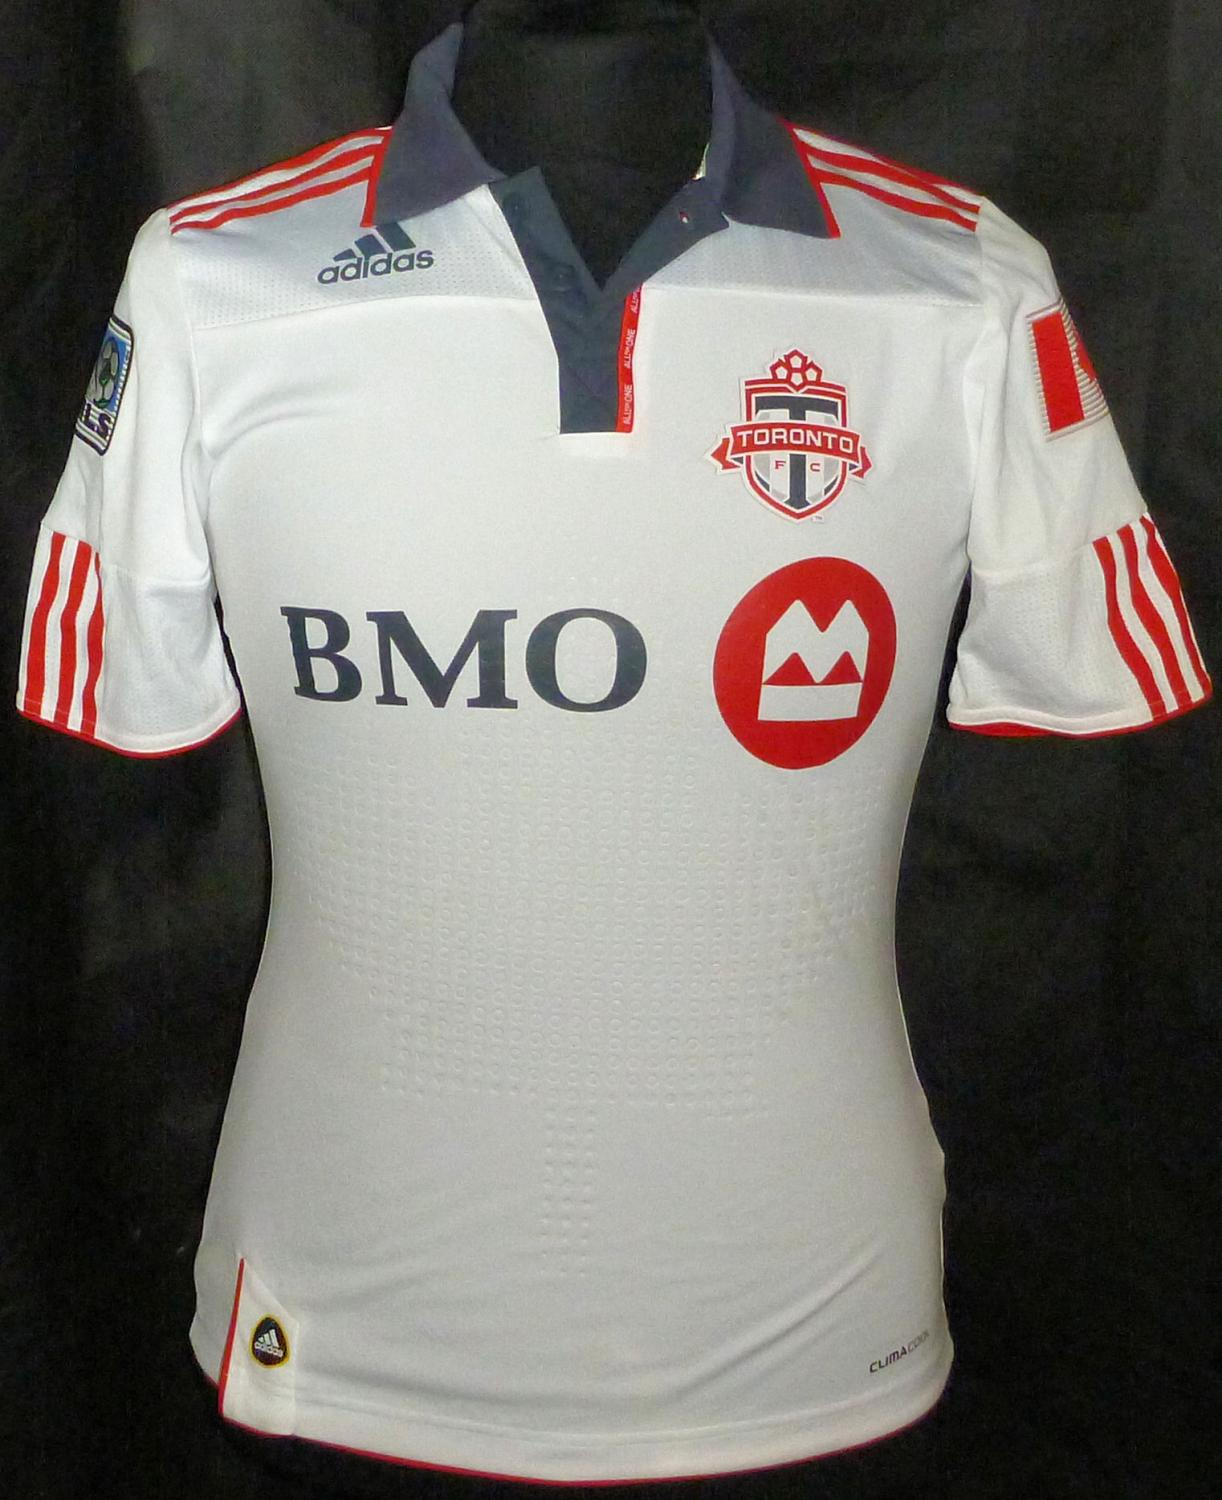 new styles 9f625 65be0 Toronto FC Away Camiseta de Fútbol 2012 - 2013.